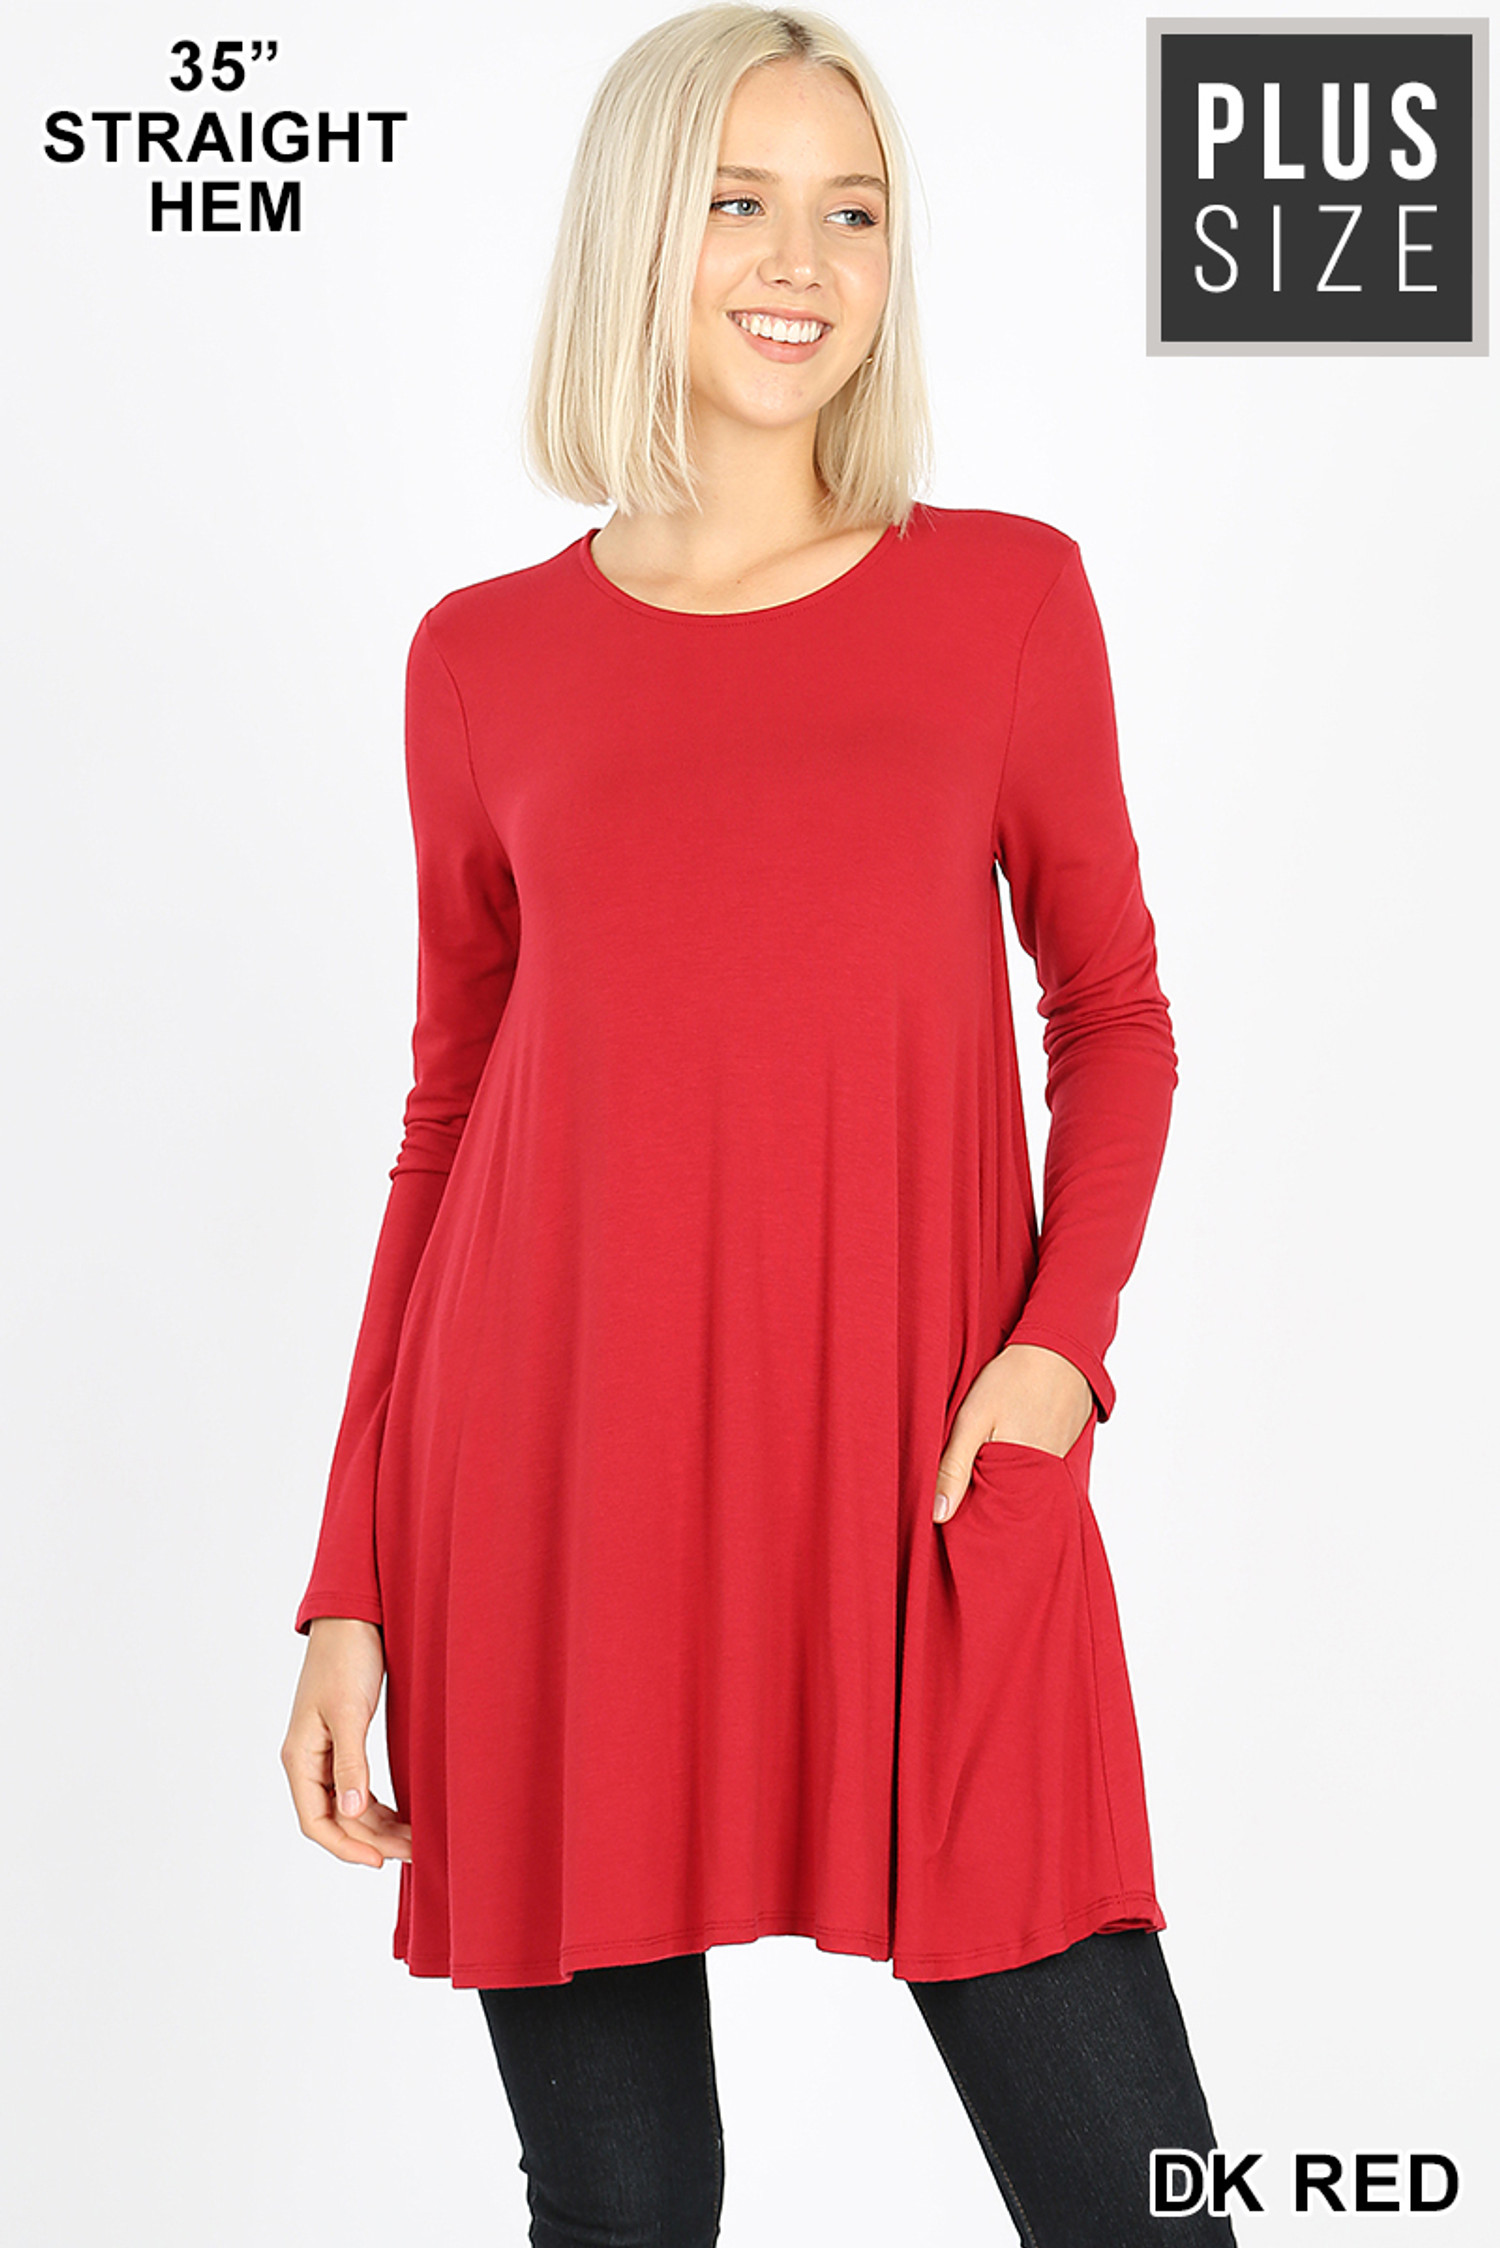 Front of Dk Red Long Sleeve Plus Size Swing Tunic with Pockets